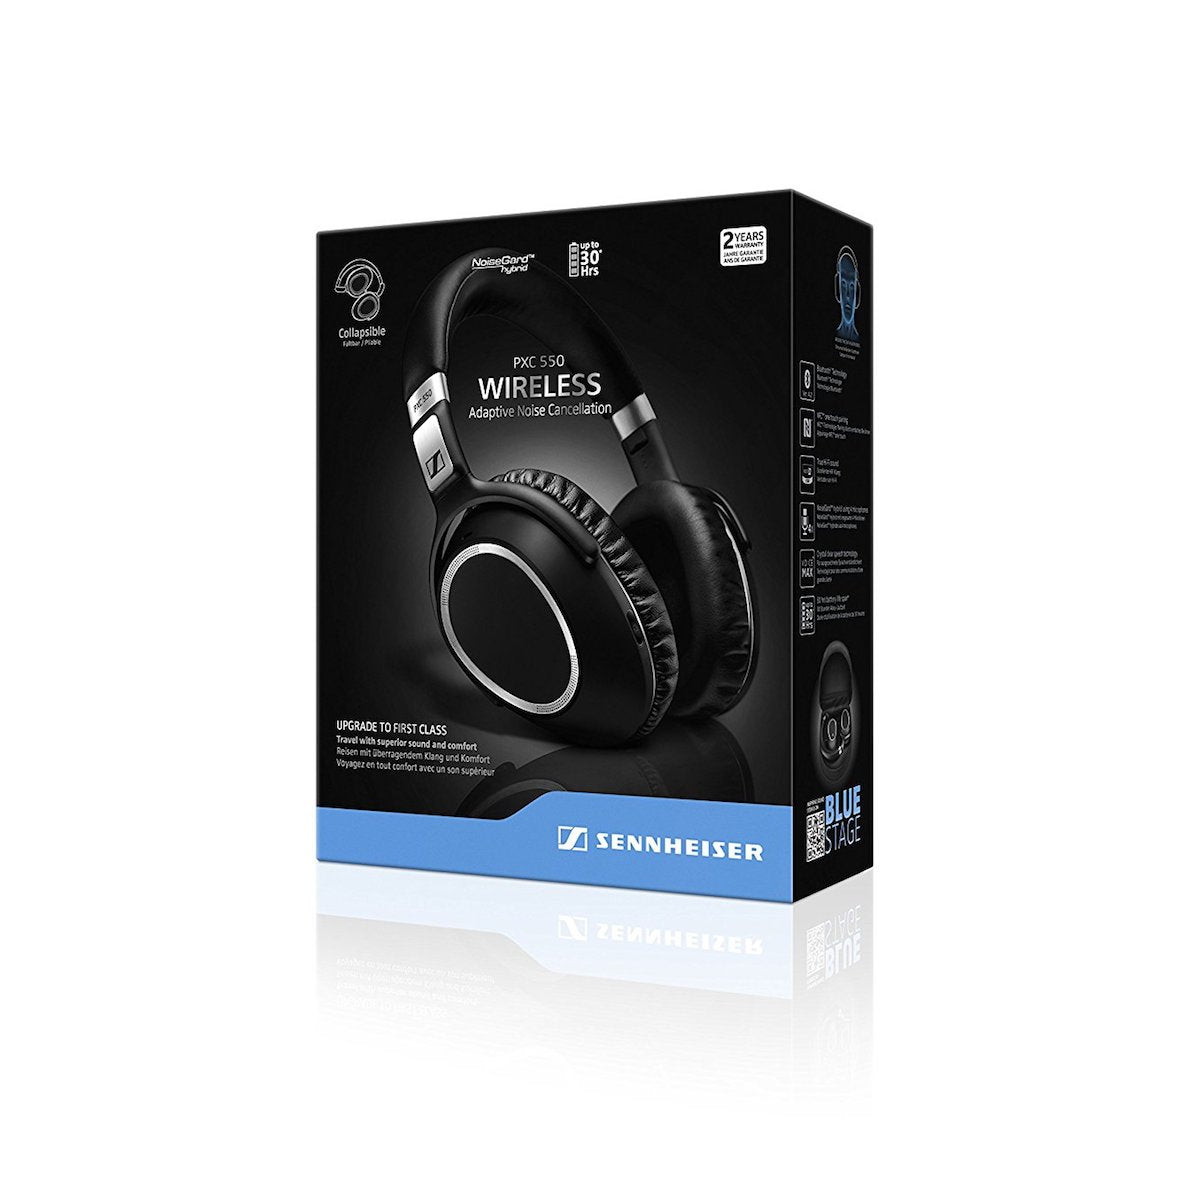 Sennheiser PXC 550 - Wireless Headphone with Noise Cancellation - AVStore